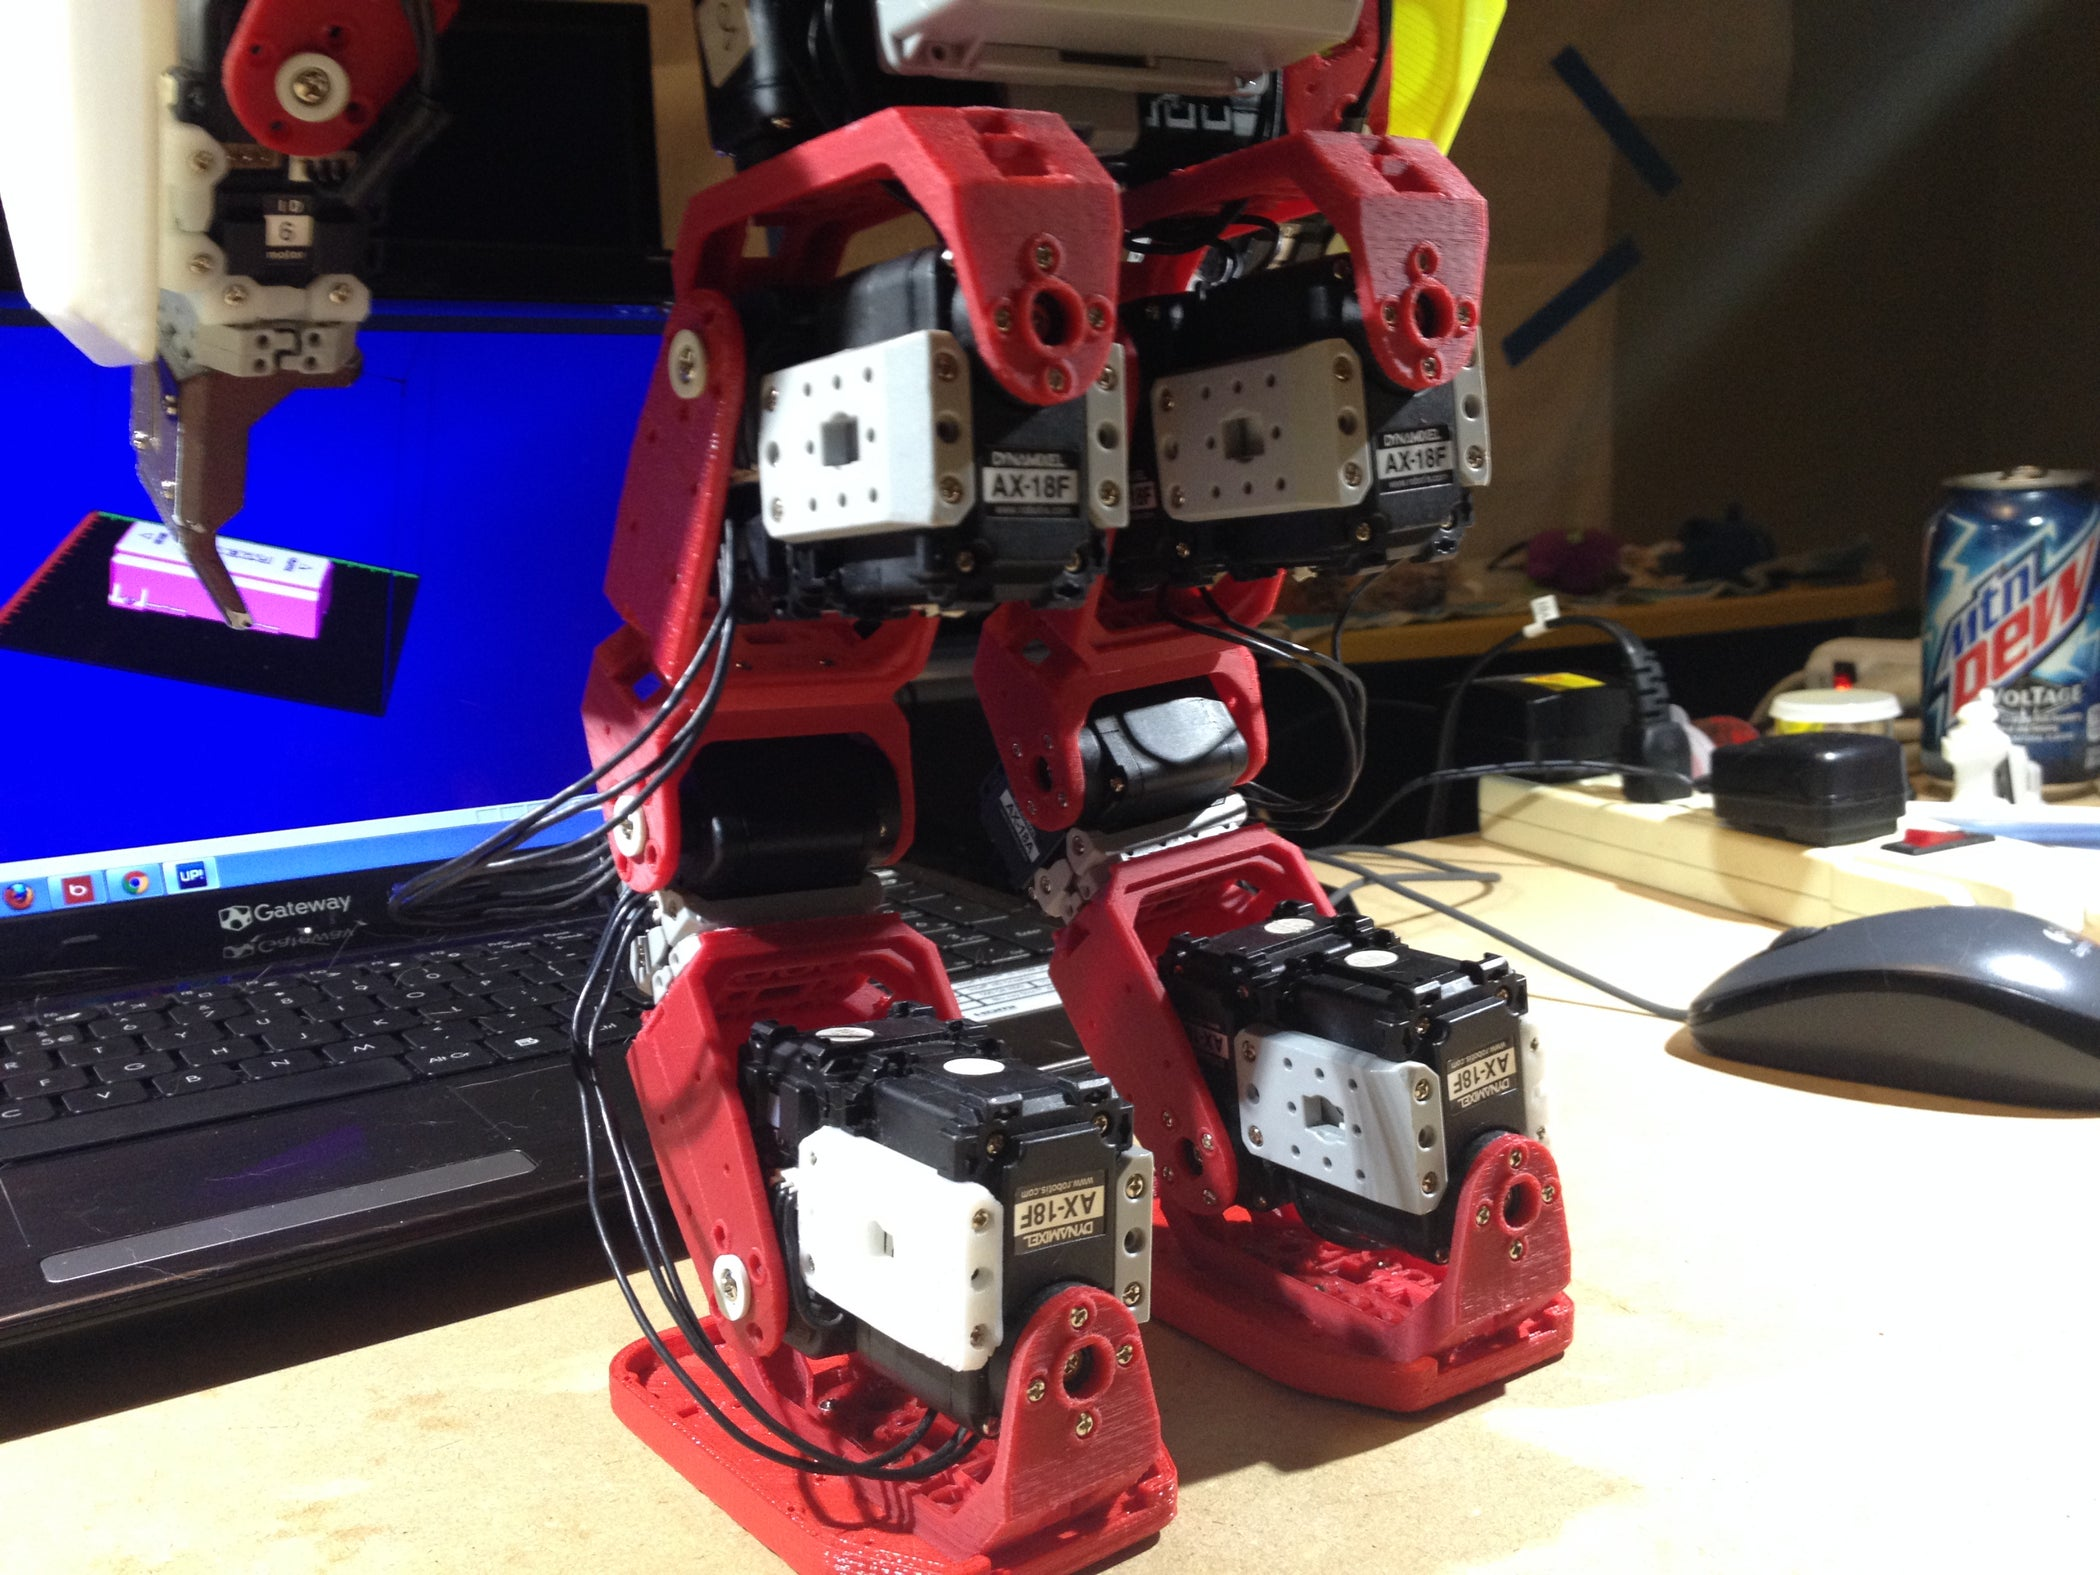 3D Printed Humanoid Robot for Under 1000.00 USD